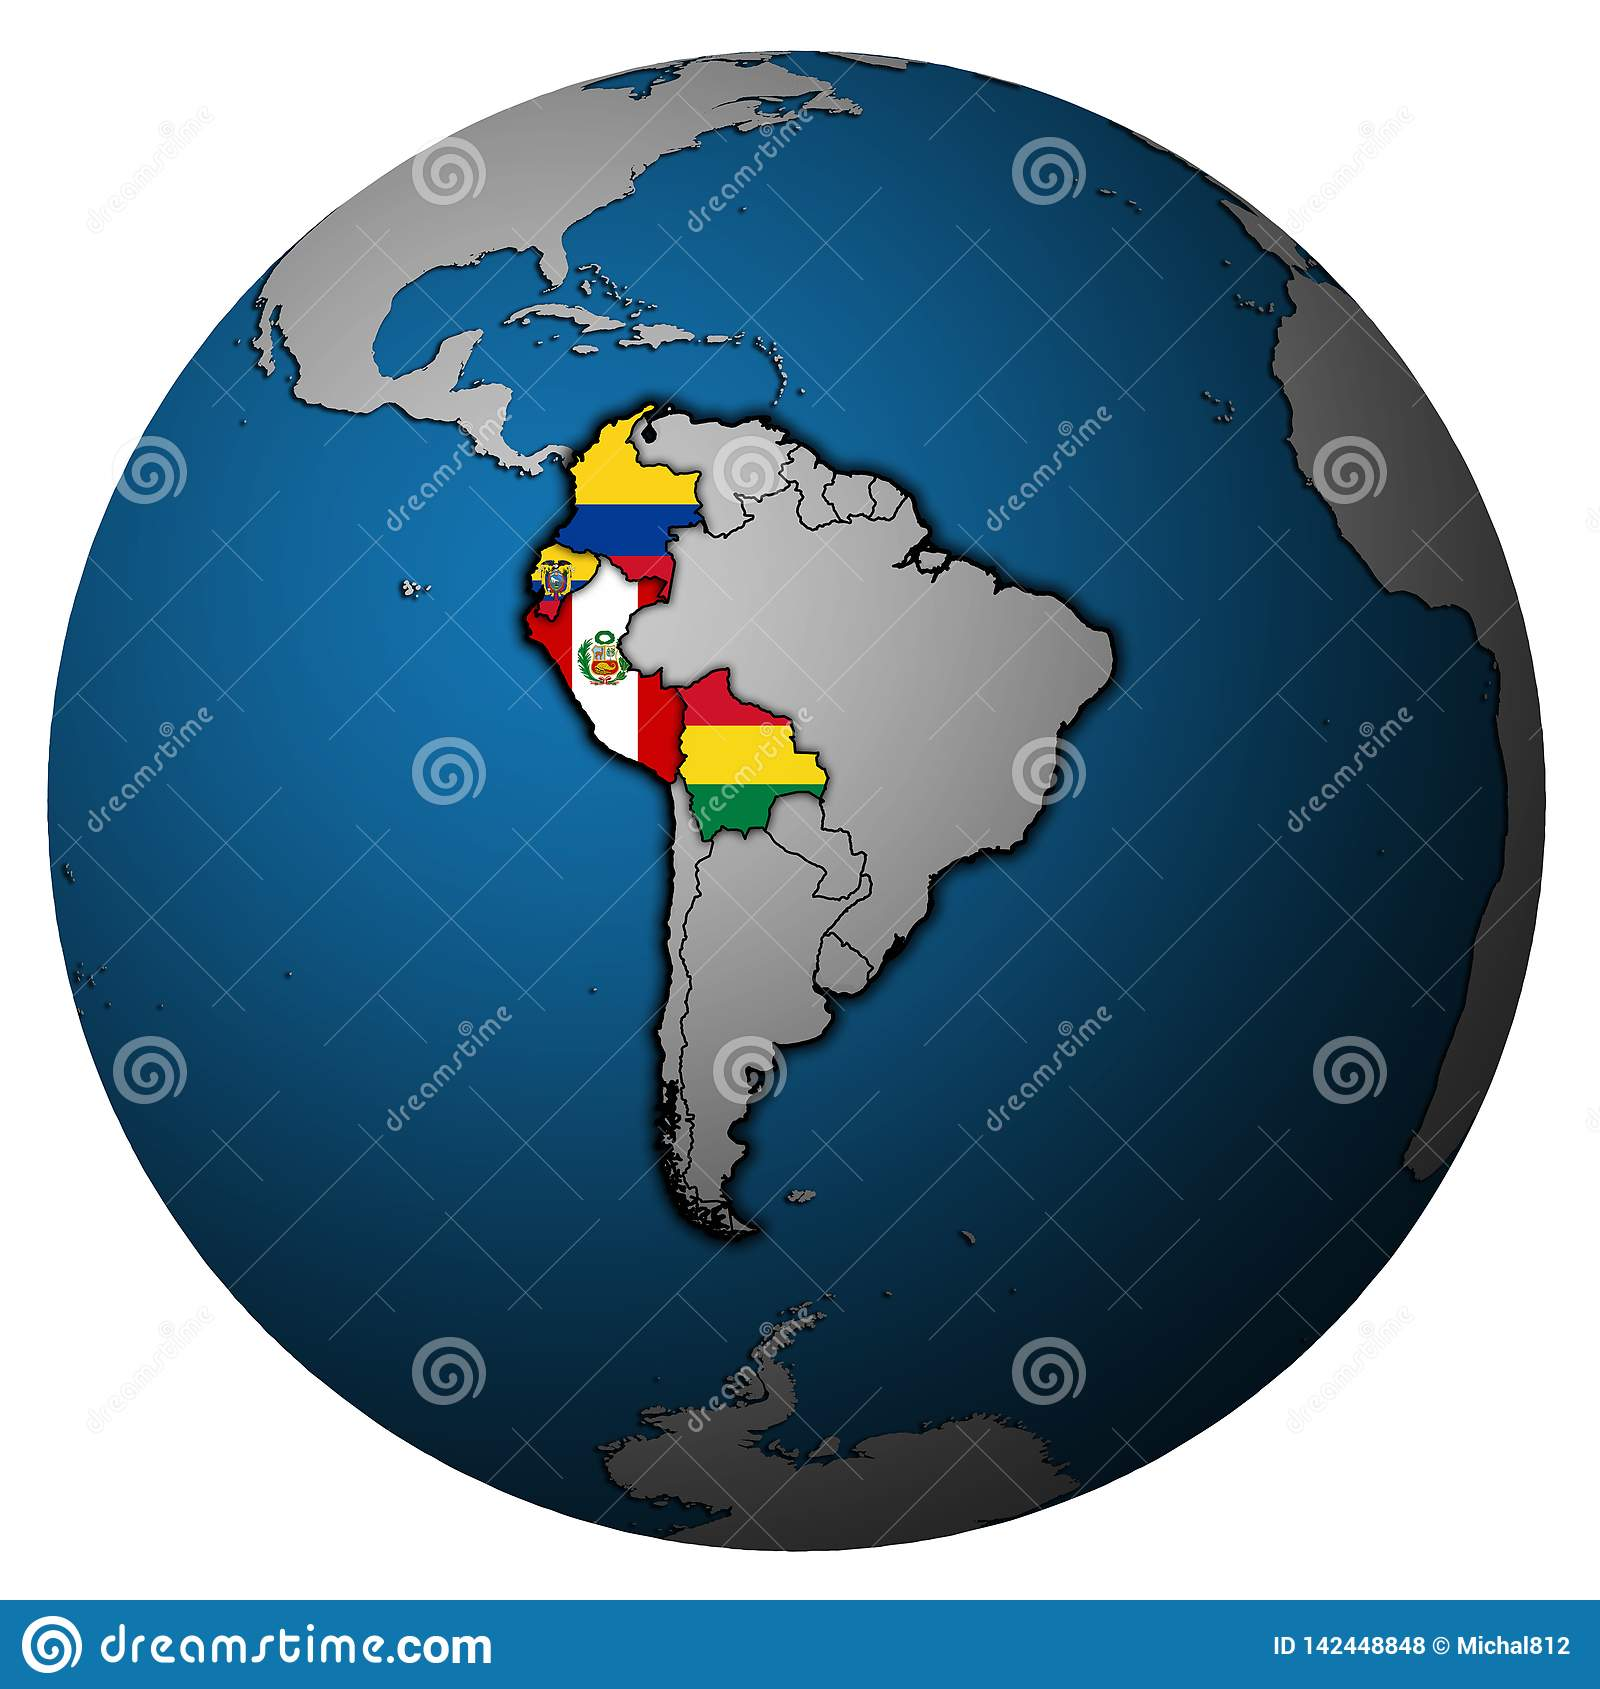 Andean Community On Globe Map Stock Illustration ... on globe map philippines, globe map asia, globe map norway, globe map europe, globe map world, globe map states, globe map austria, globe map italy, globe map finland, globe map india, globe map art, globe map africa,